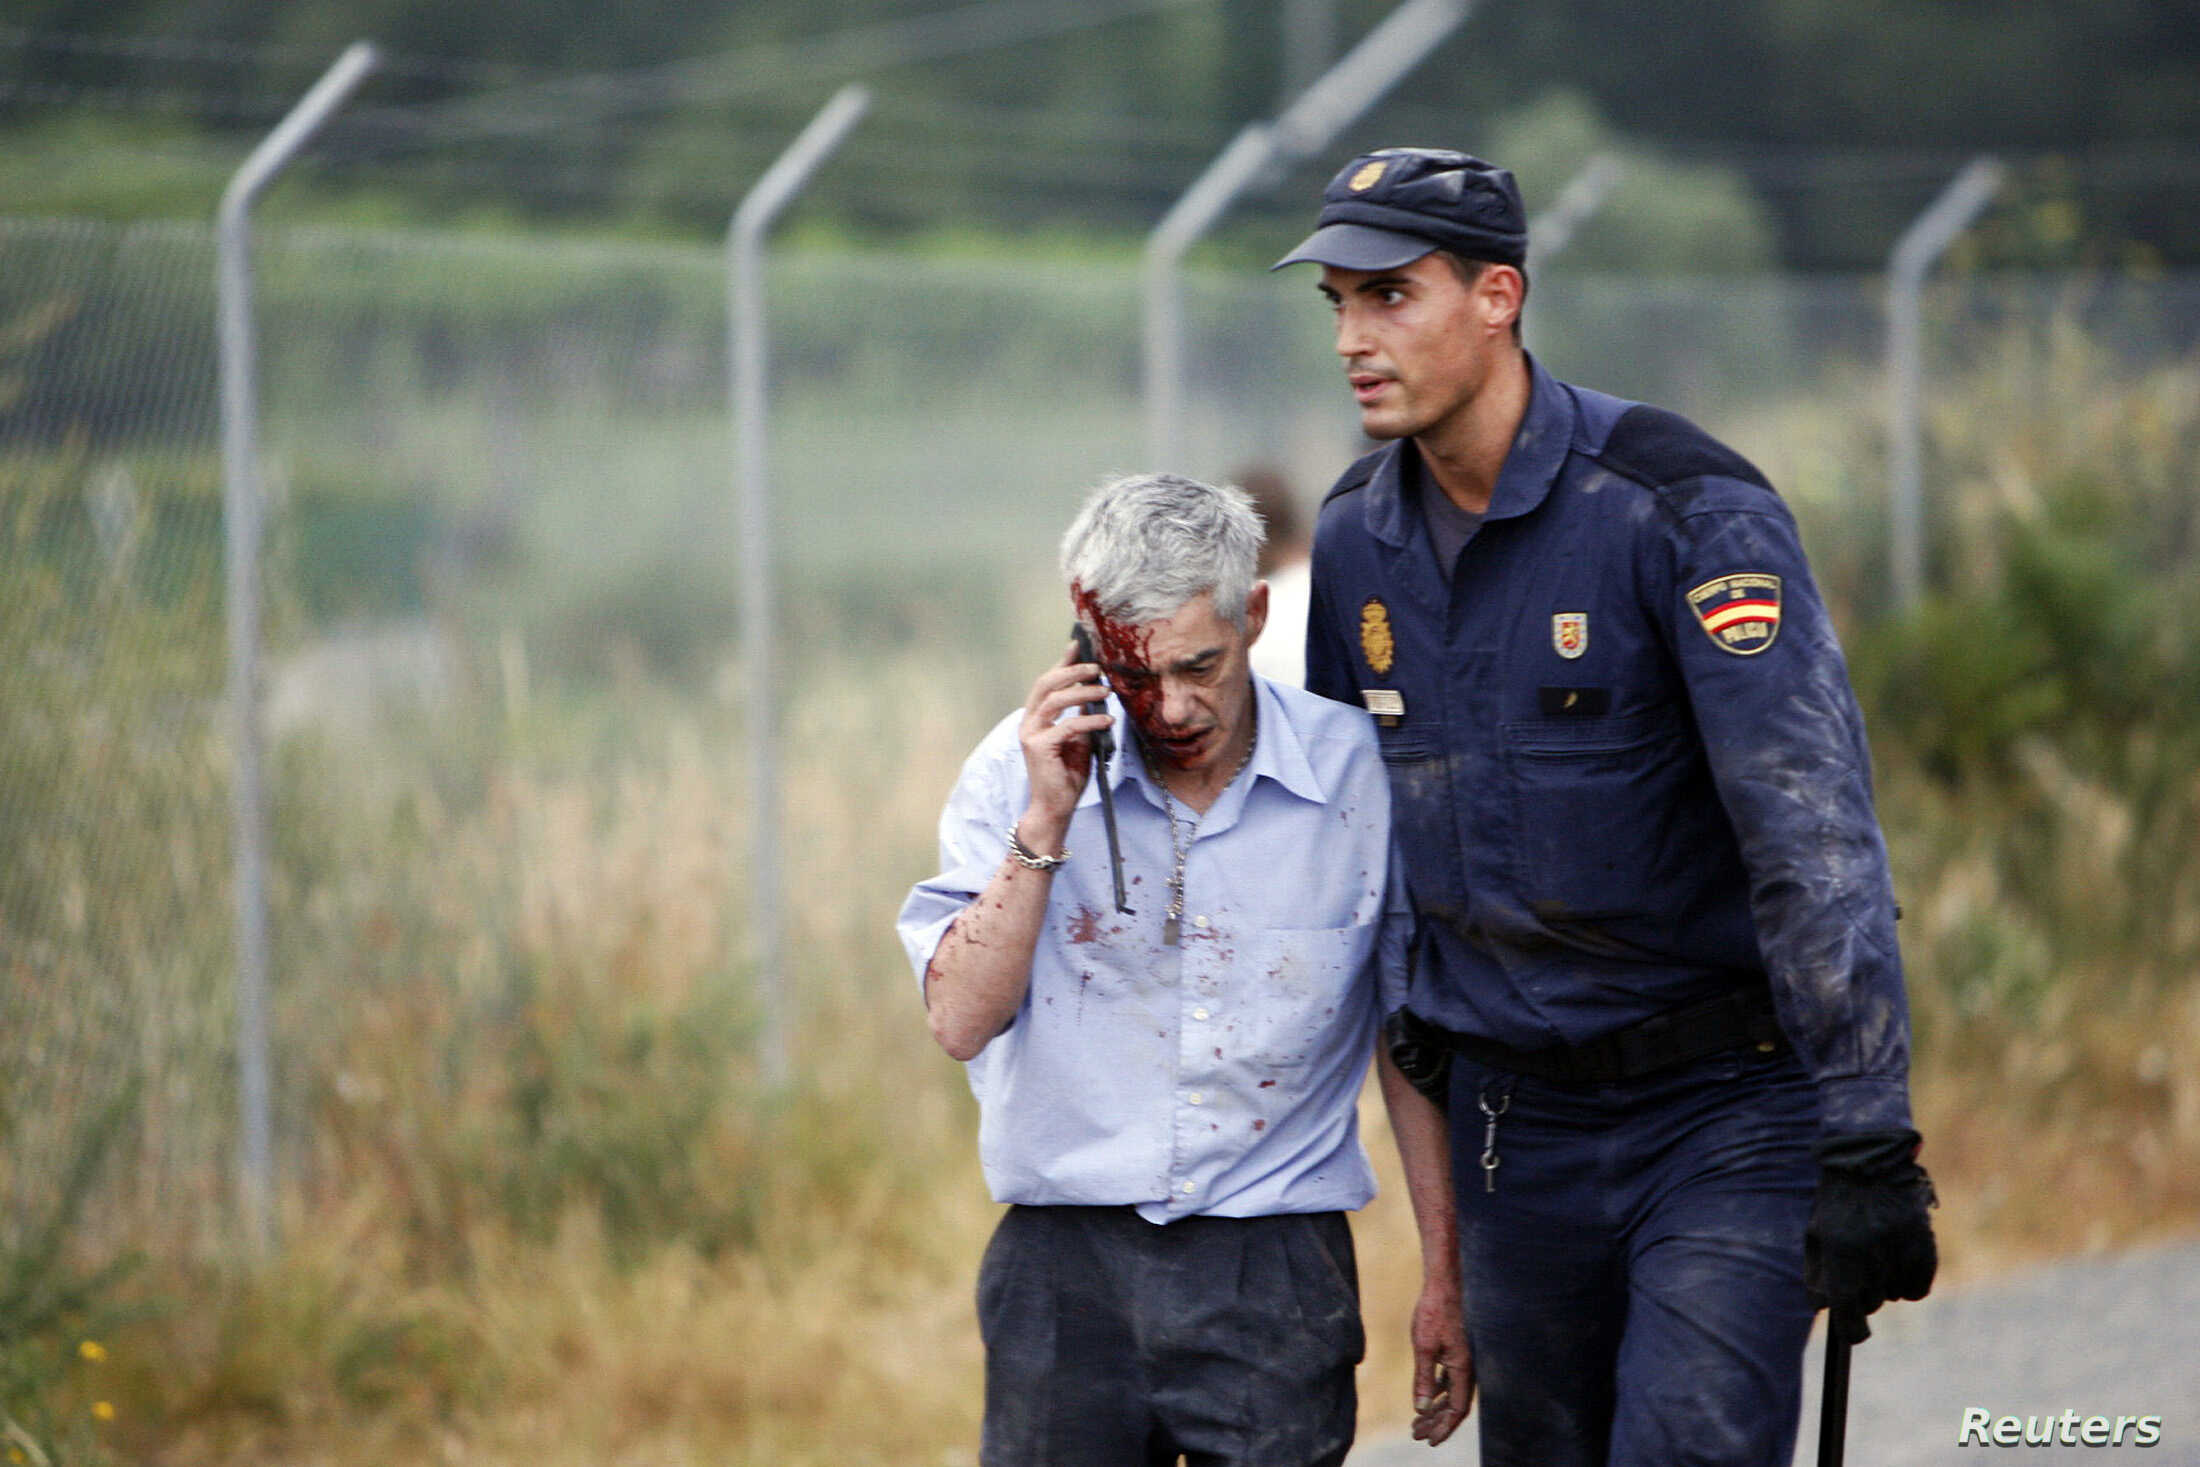 Spain Train Crash Driver Suspected of 'Reckless Homicide